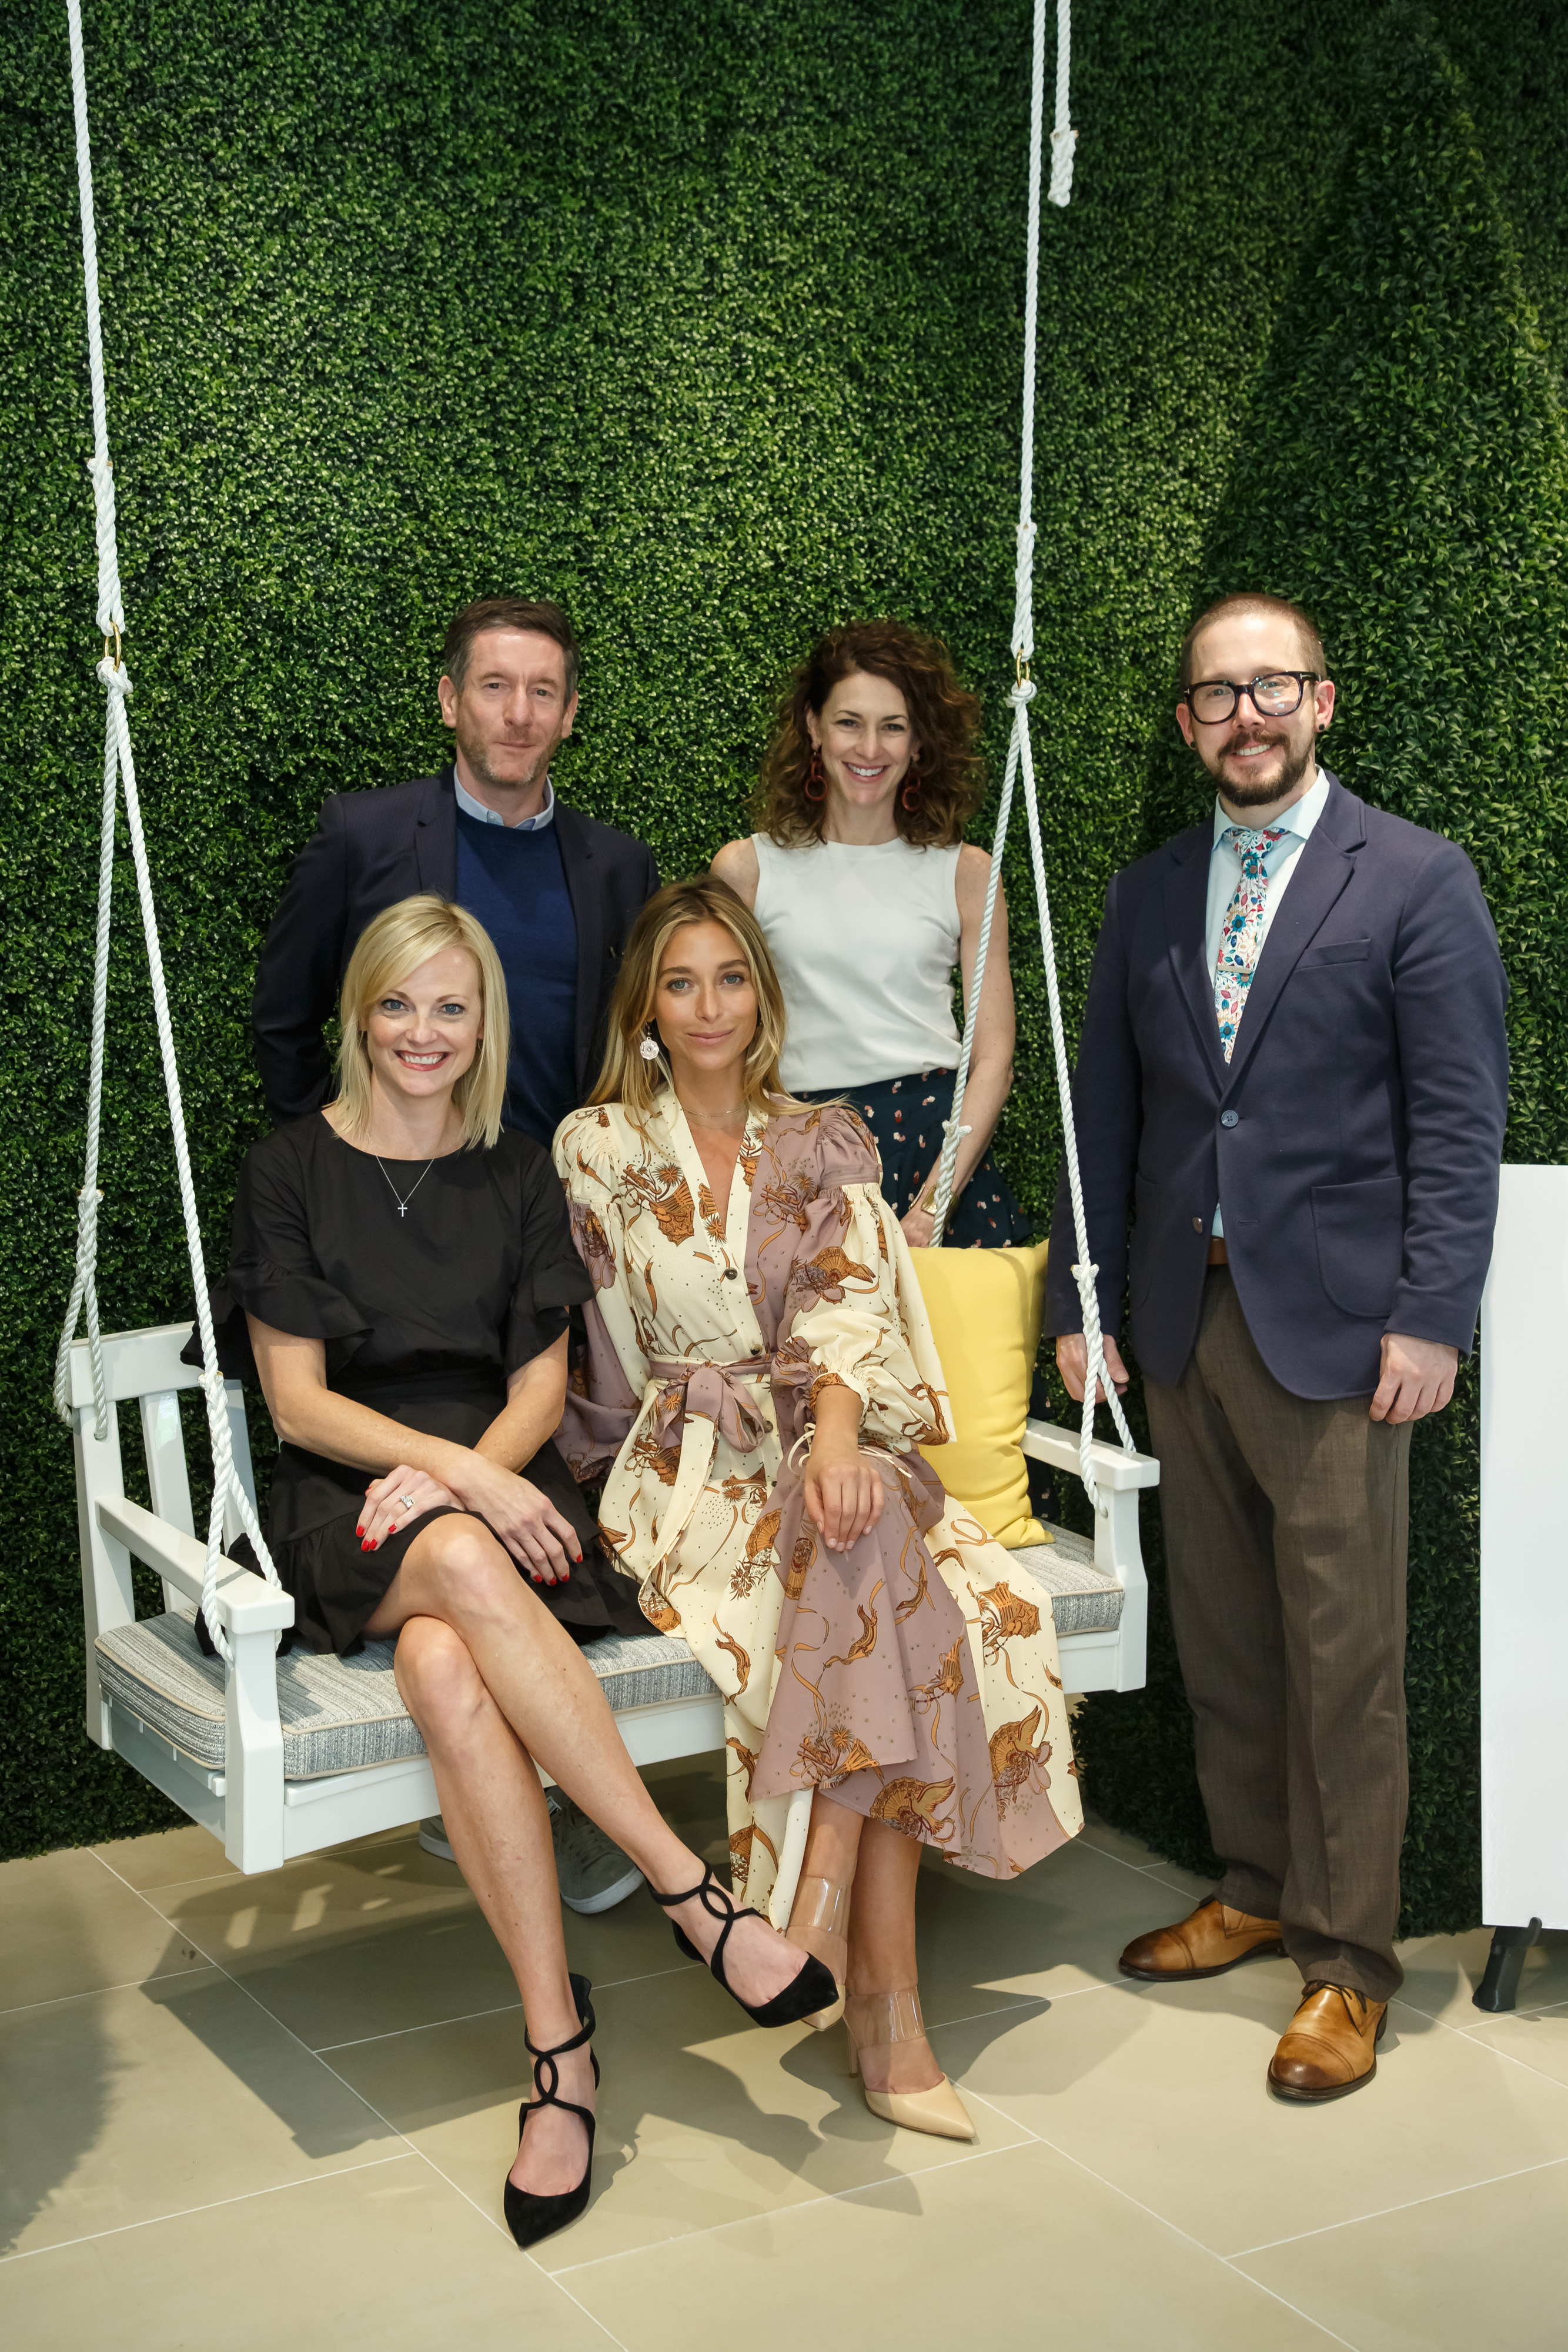 Katie Miner, Peter Dunham, Jessica Schuster, Ellen McGauley and Tim Daly at the Masters of Design reception at JANUS et Cie